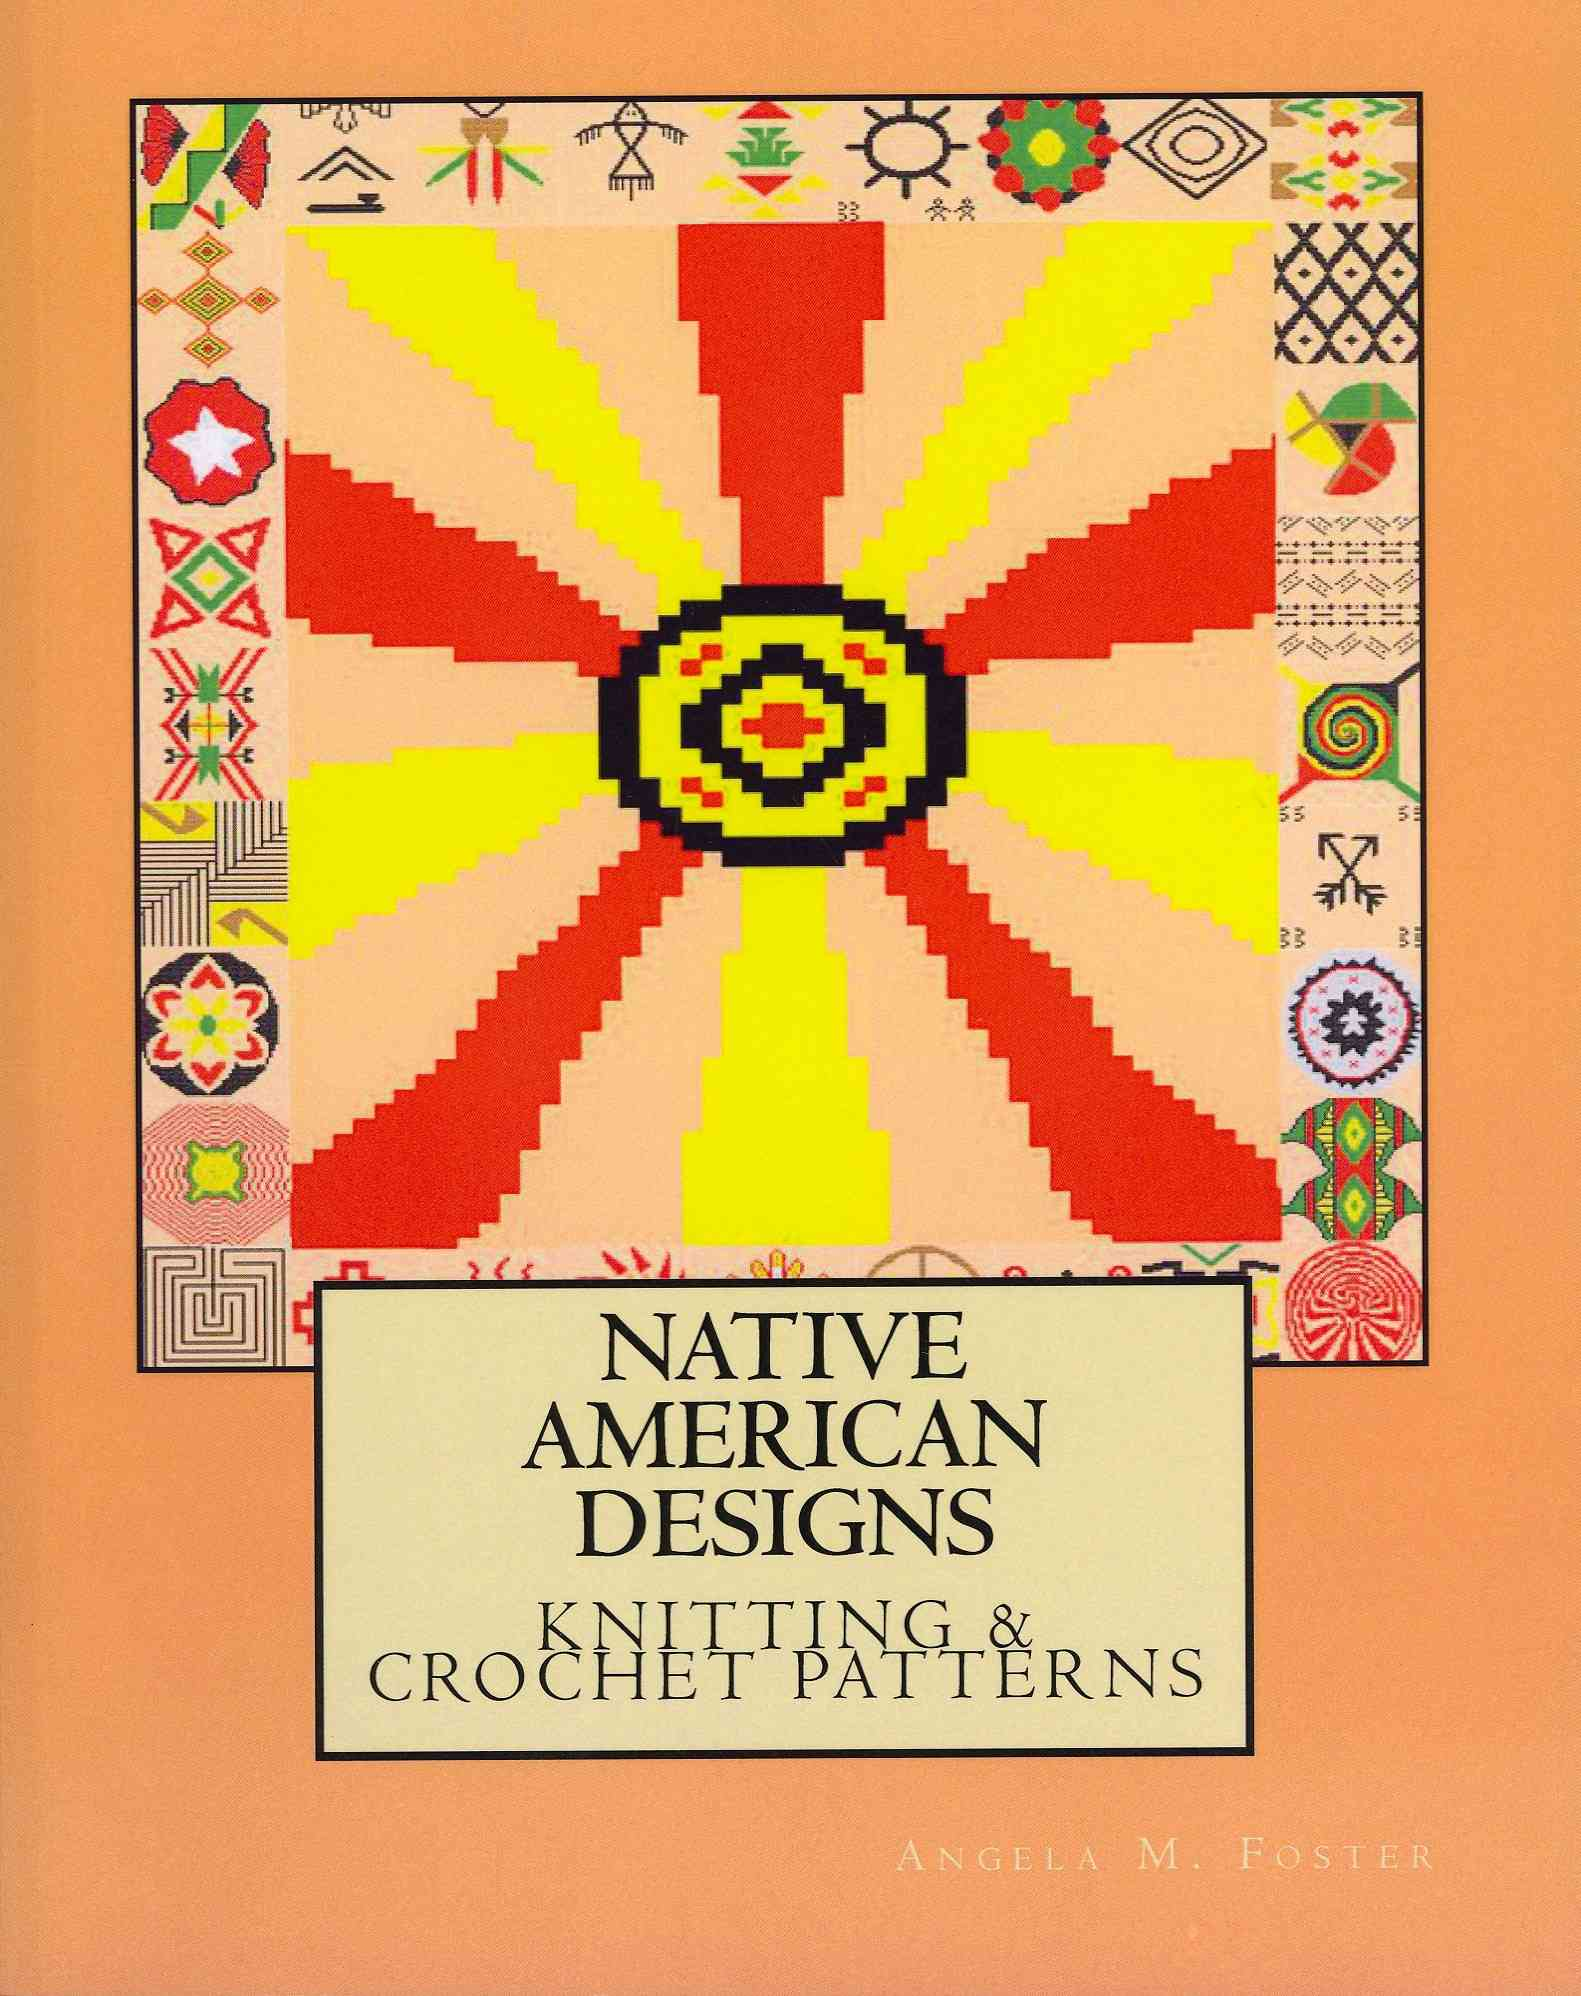 CreateSpace Native American Designs Knitting & Crochet Patterns by Foster, Angela M. [Paperback] at Sears.com